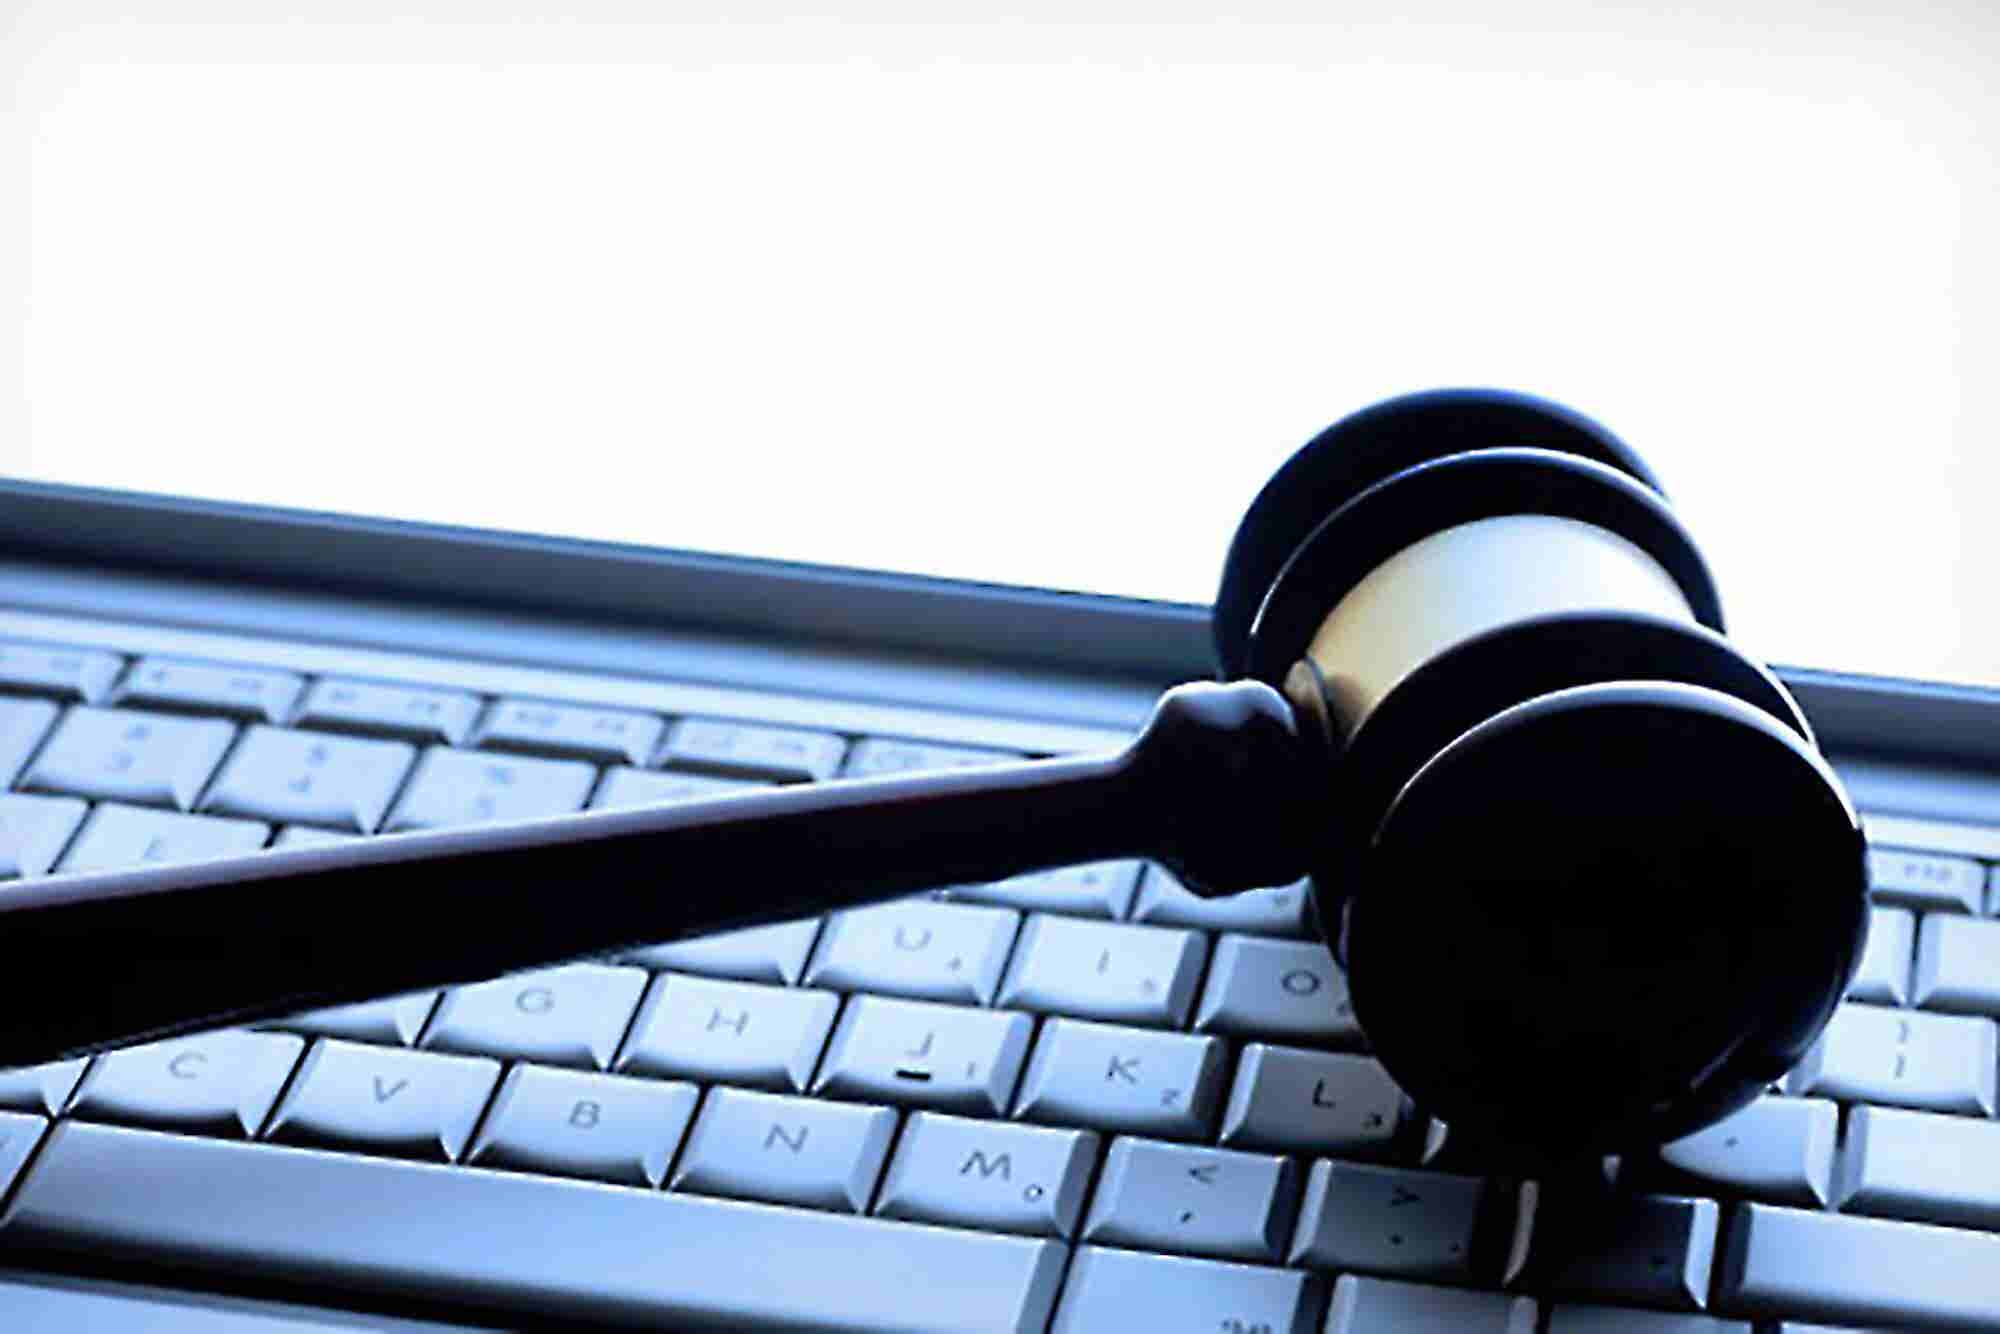 2014 May be the Year to Find Your Lawyer Online